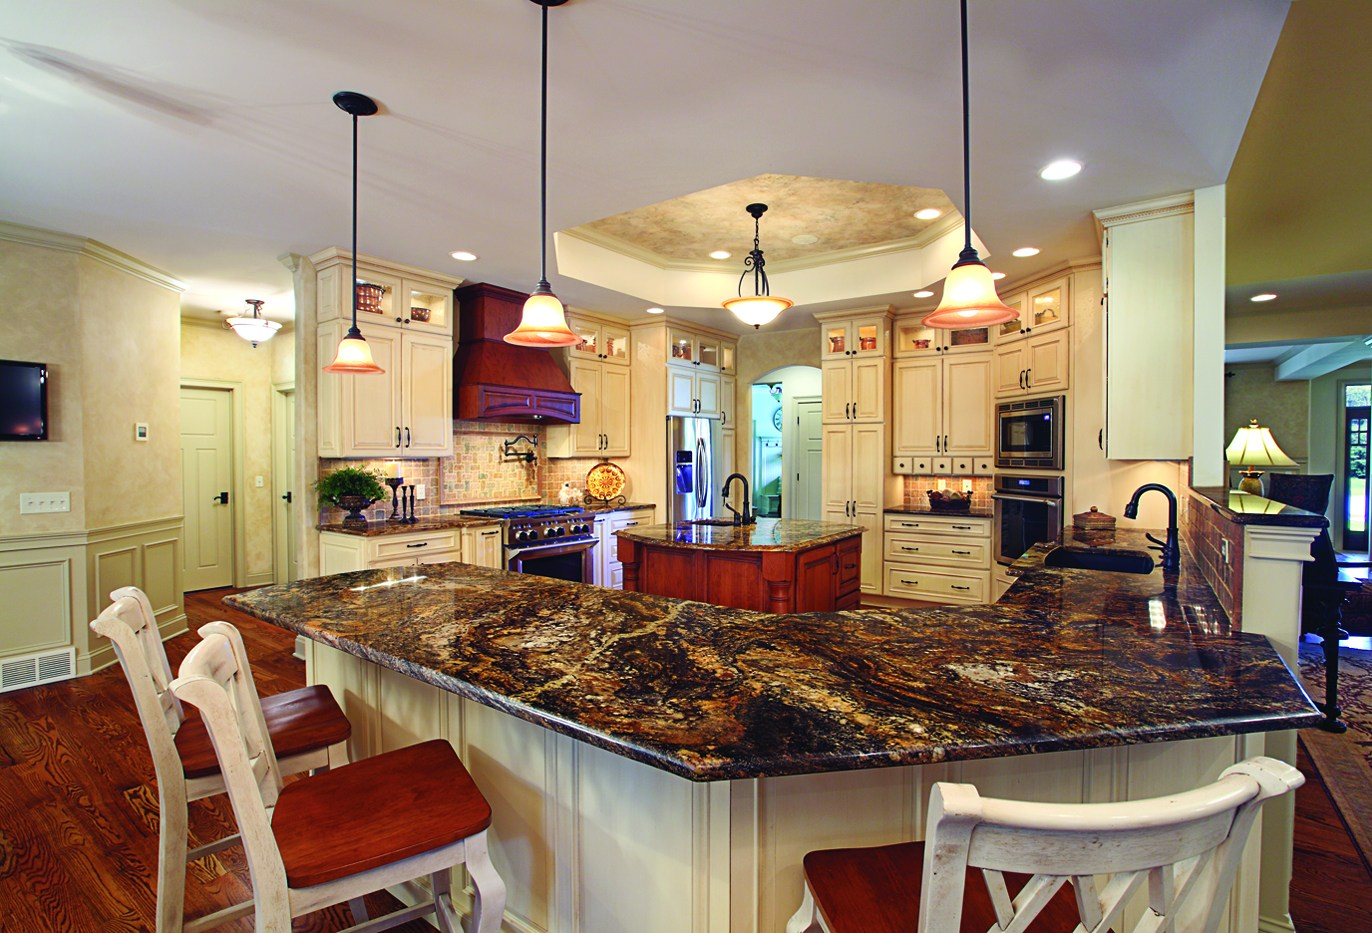 250 for 500 toward tile or granite at best tile schenectady ny